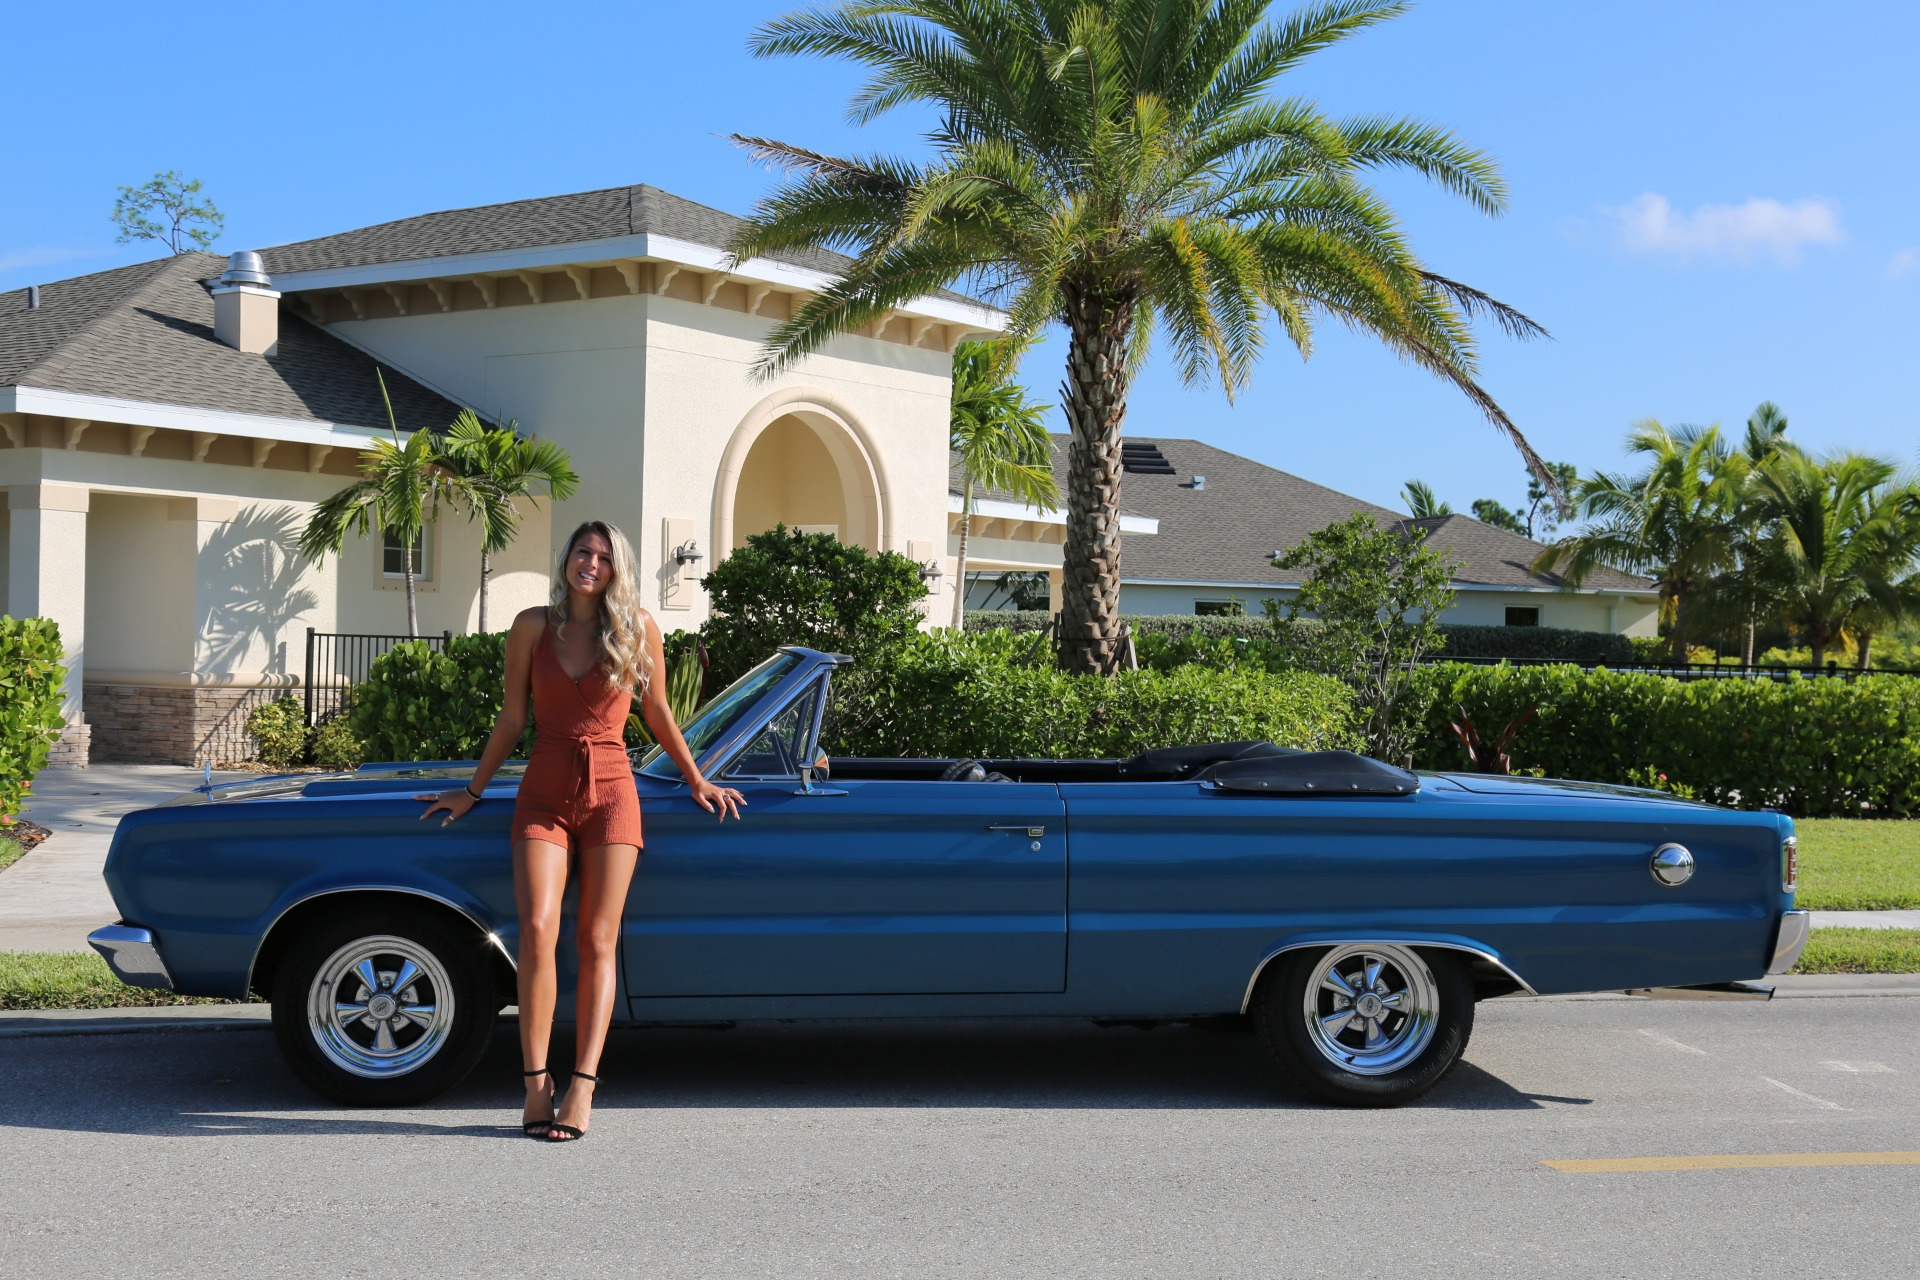 Used 1966 Plymouth Belvedere 383 V8 for sale Sold at Muscle Cars for Sale Inc. in Fort Myers FL 33912 3